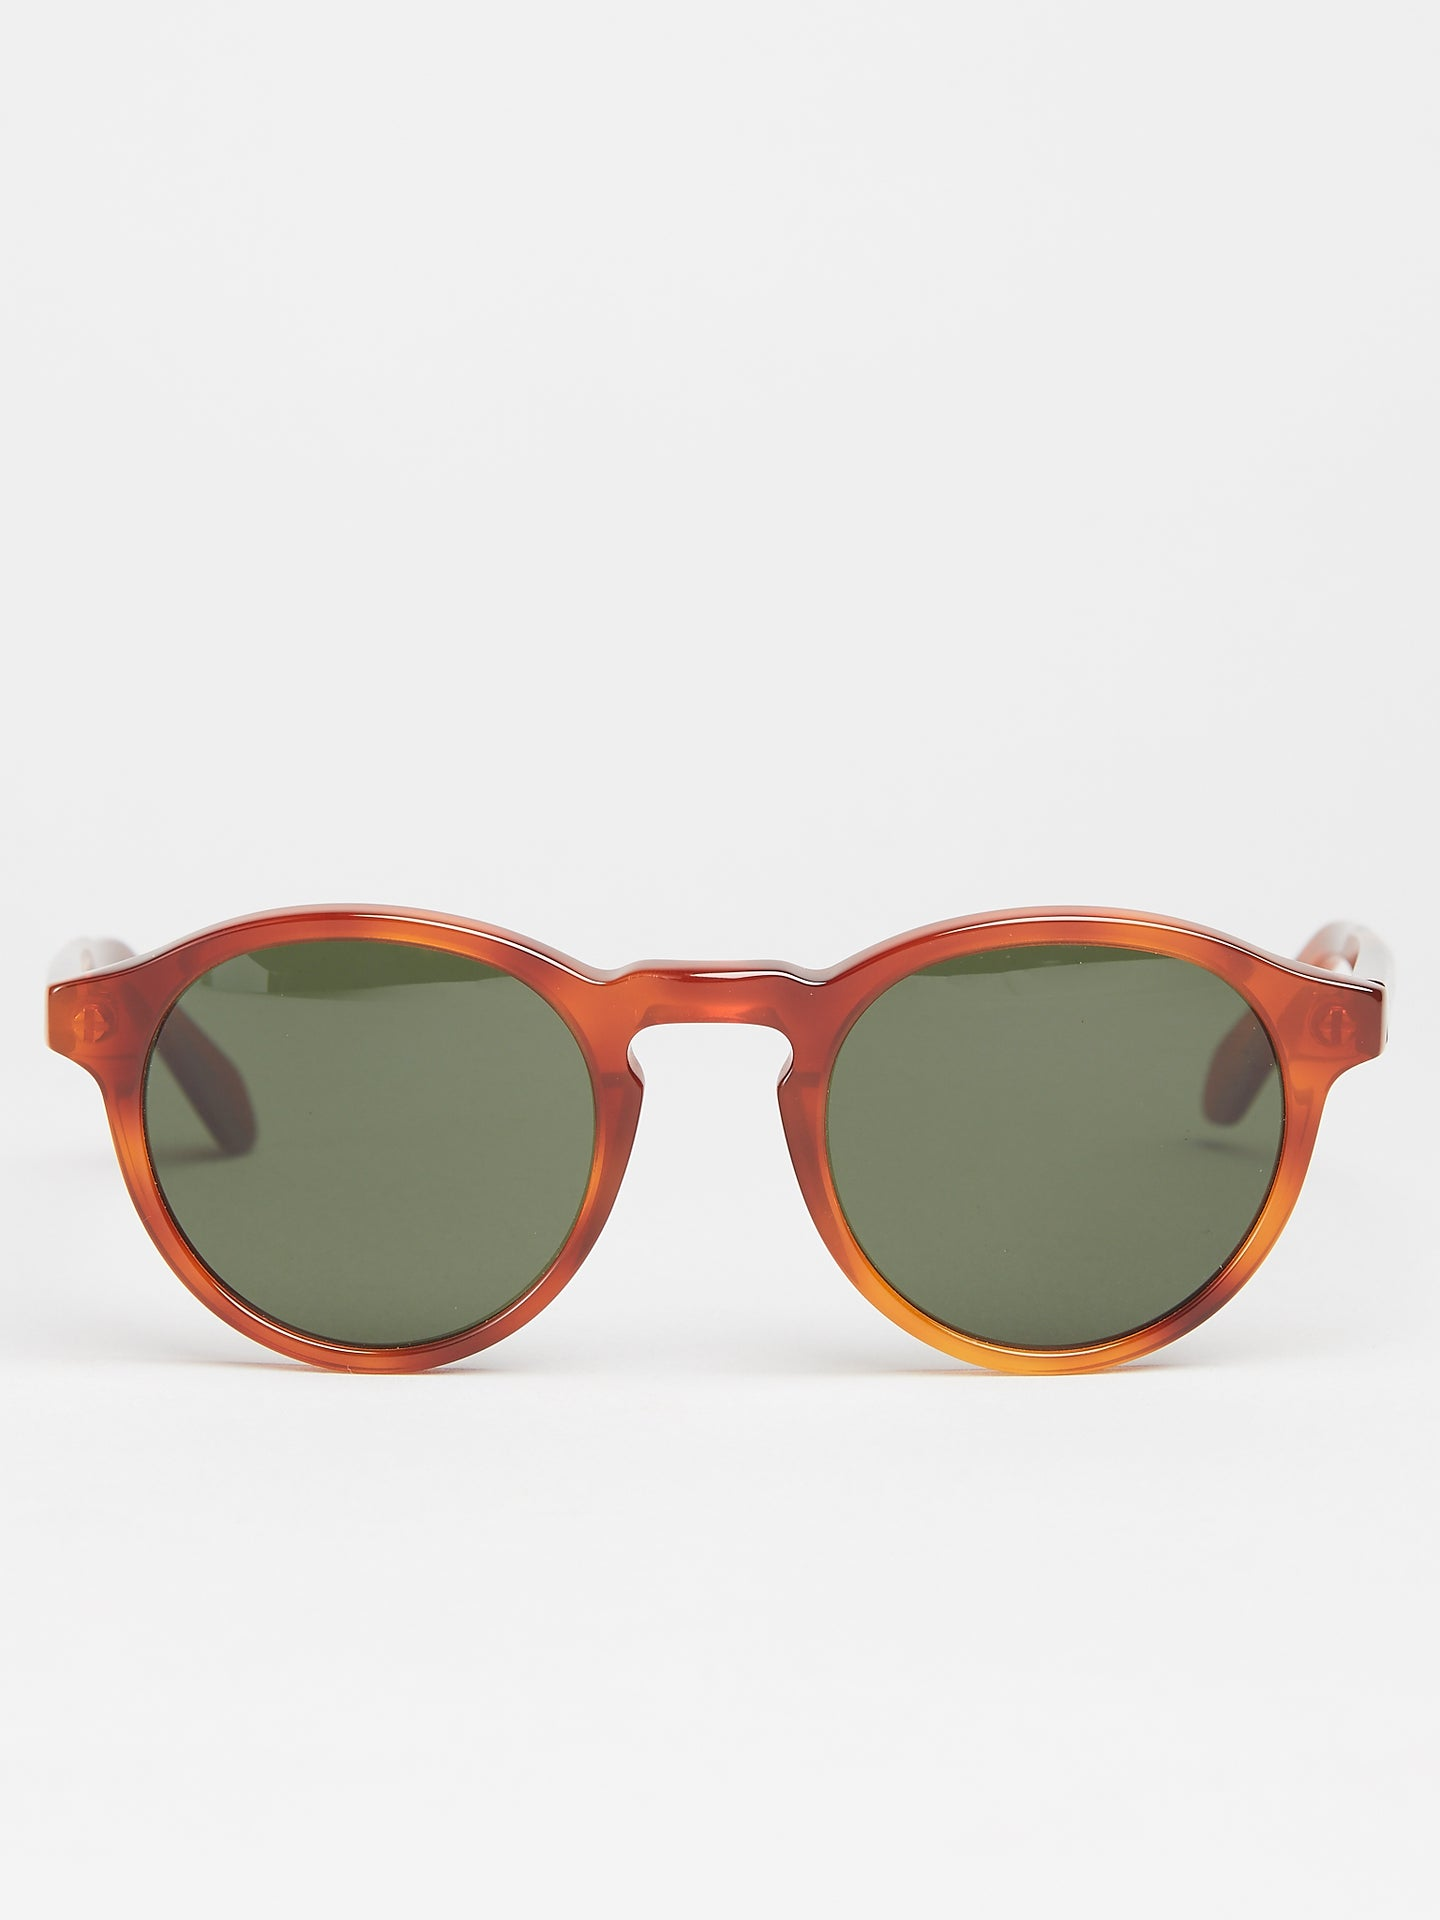 Edwardson Princeton Sun Light Tortoise